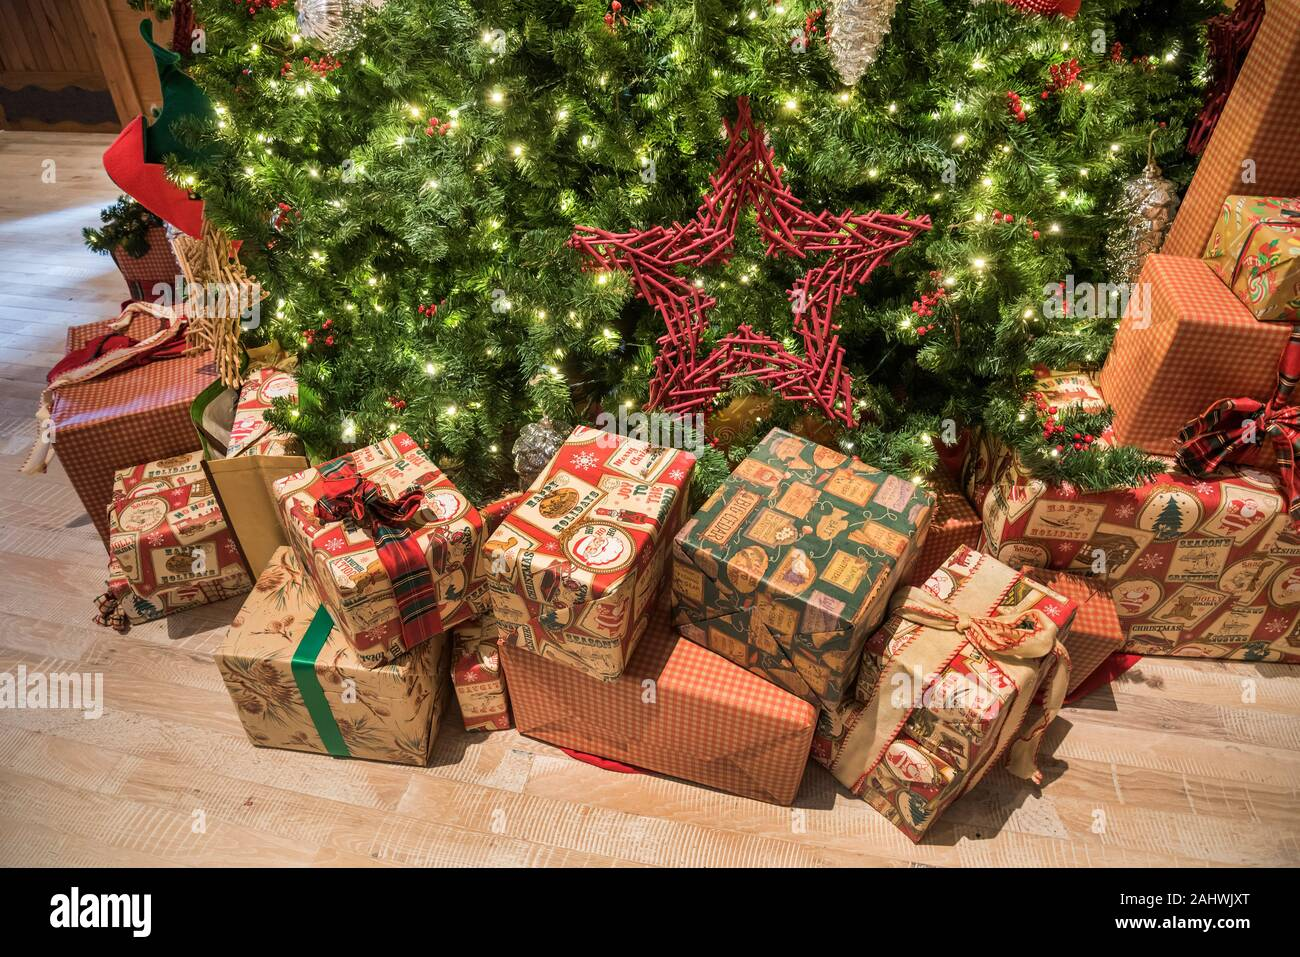 Christmas Decorations And Gifts Under A Large Christmas Tree Stock Photo Alamy